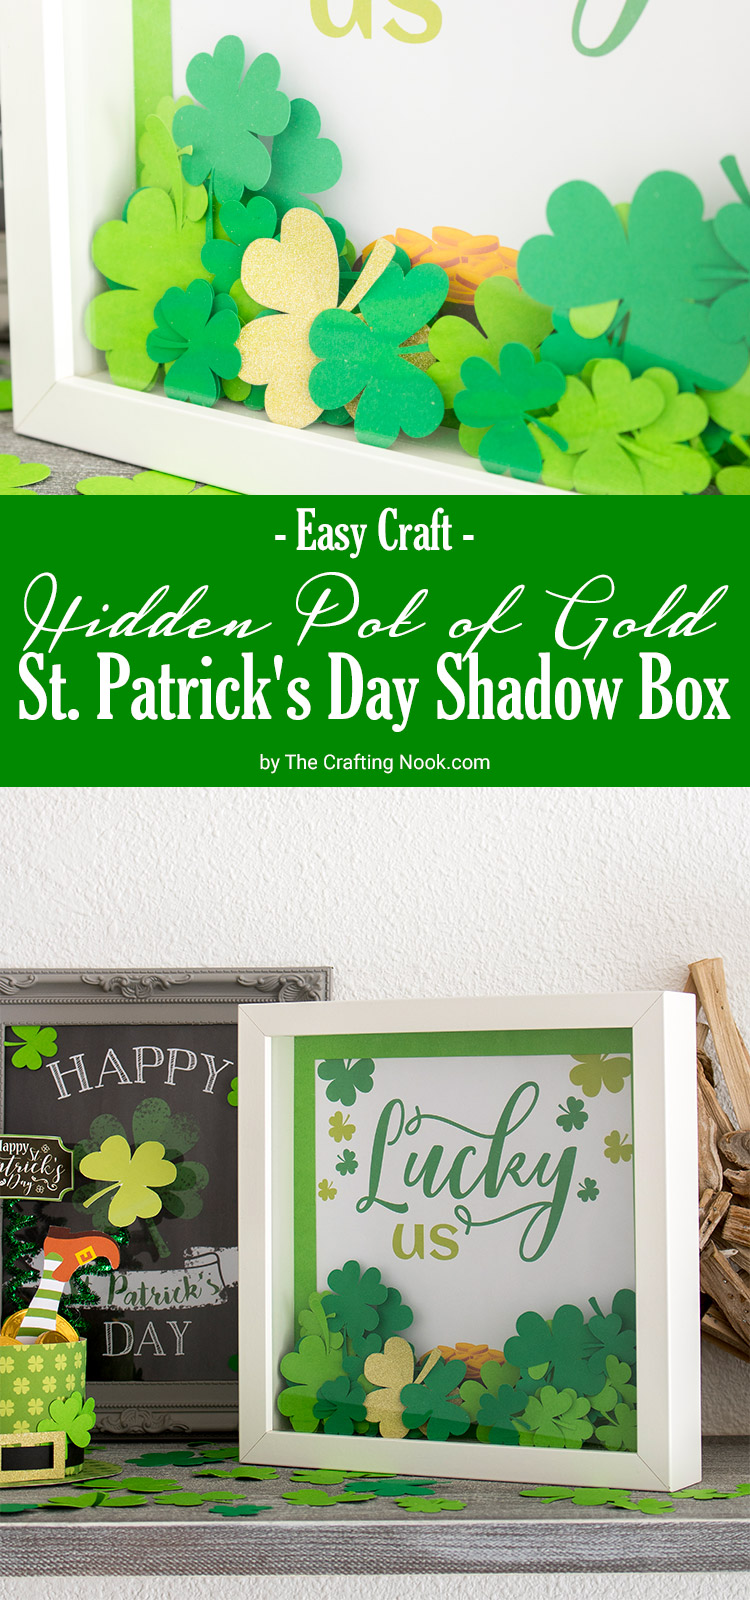 DIY Hidden Pot of Gold St. Patrick's Day Shadow Box